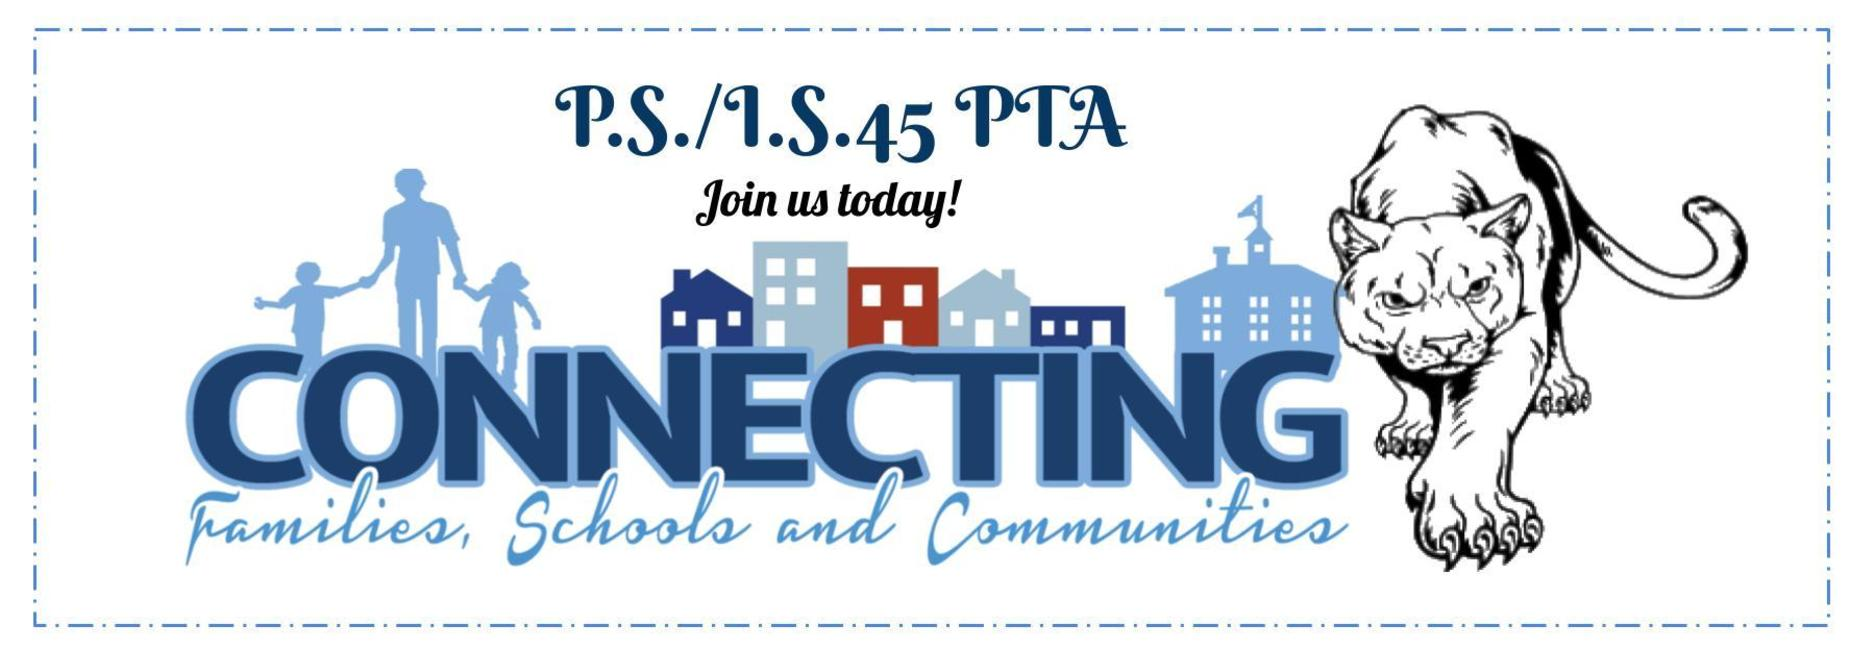 Join the PTA! Connecting families, schools, and communities.